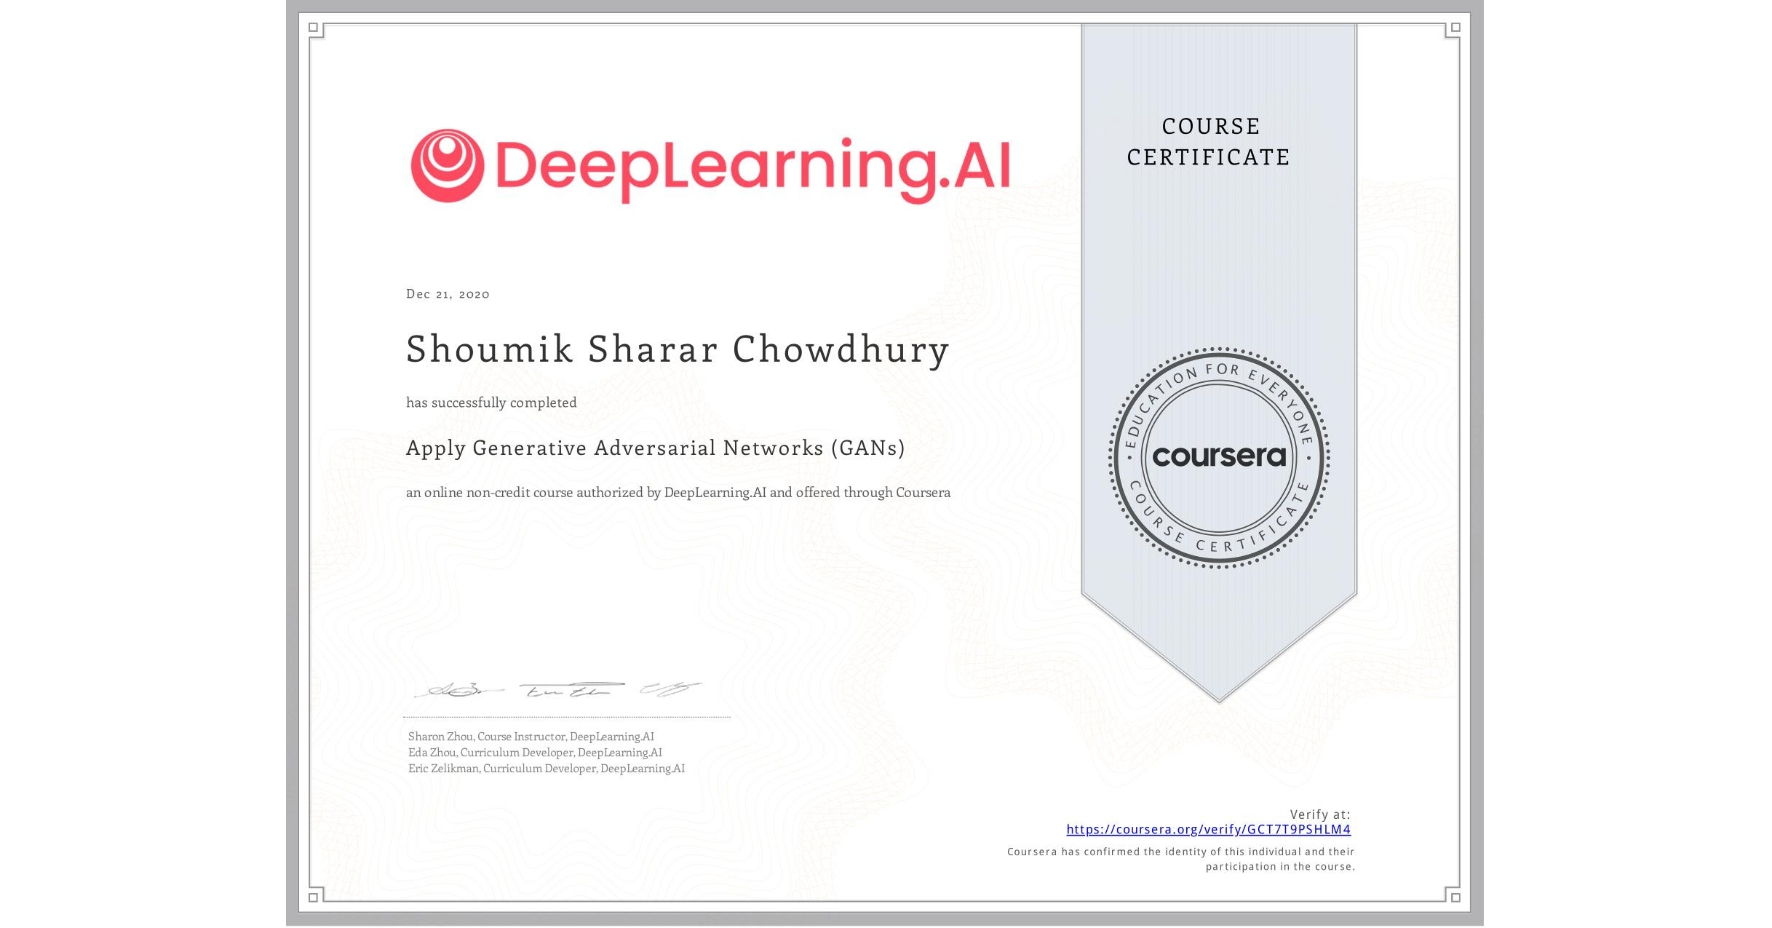 View certificate for Shoumik Sharar Chowdhury, Apply Generative Adversarial Networks (GANs), an online non-credit course authorized by DeepLearning.AI and offered through Coursera